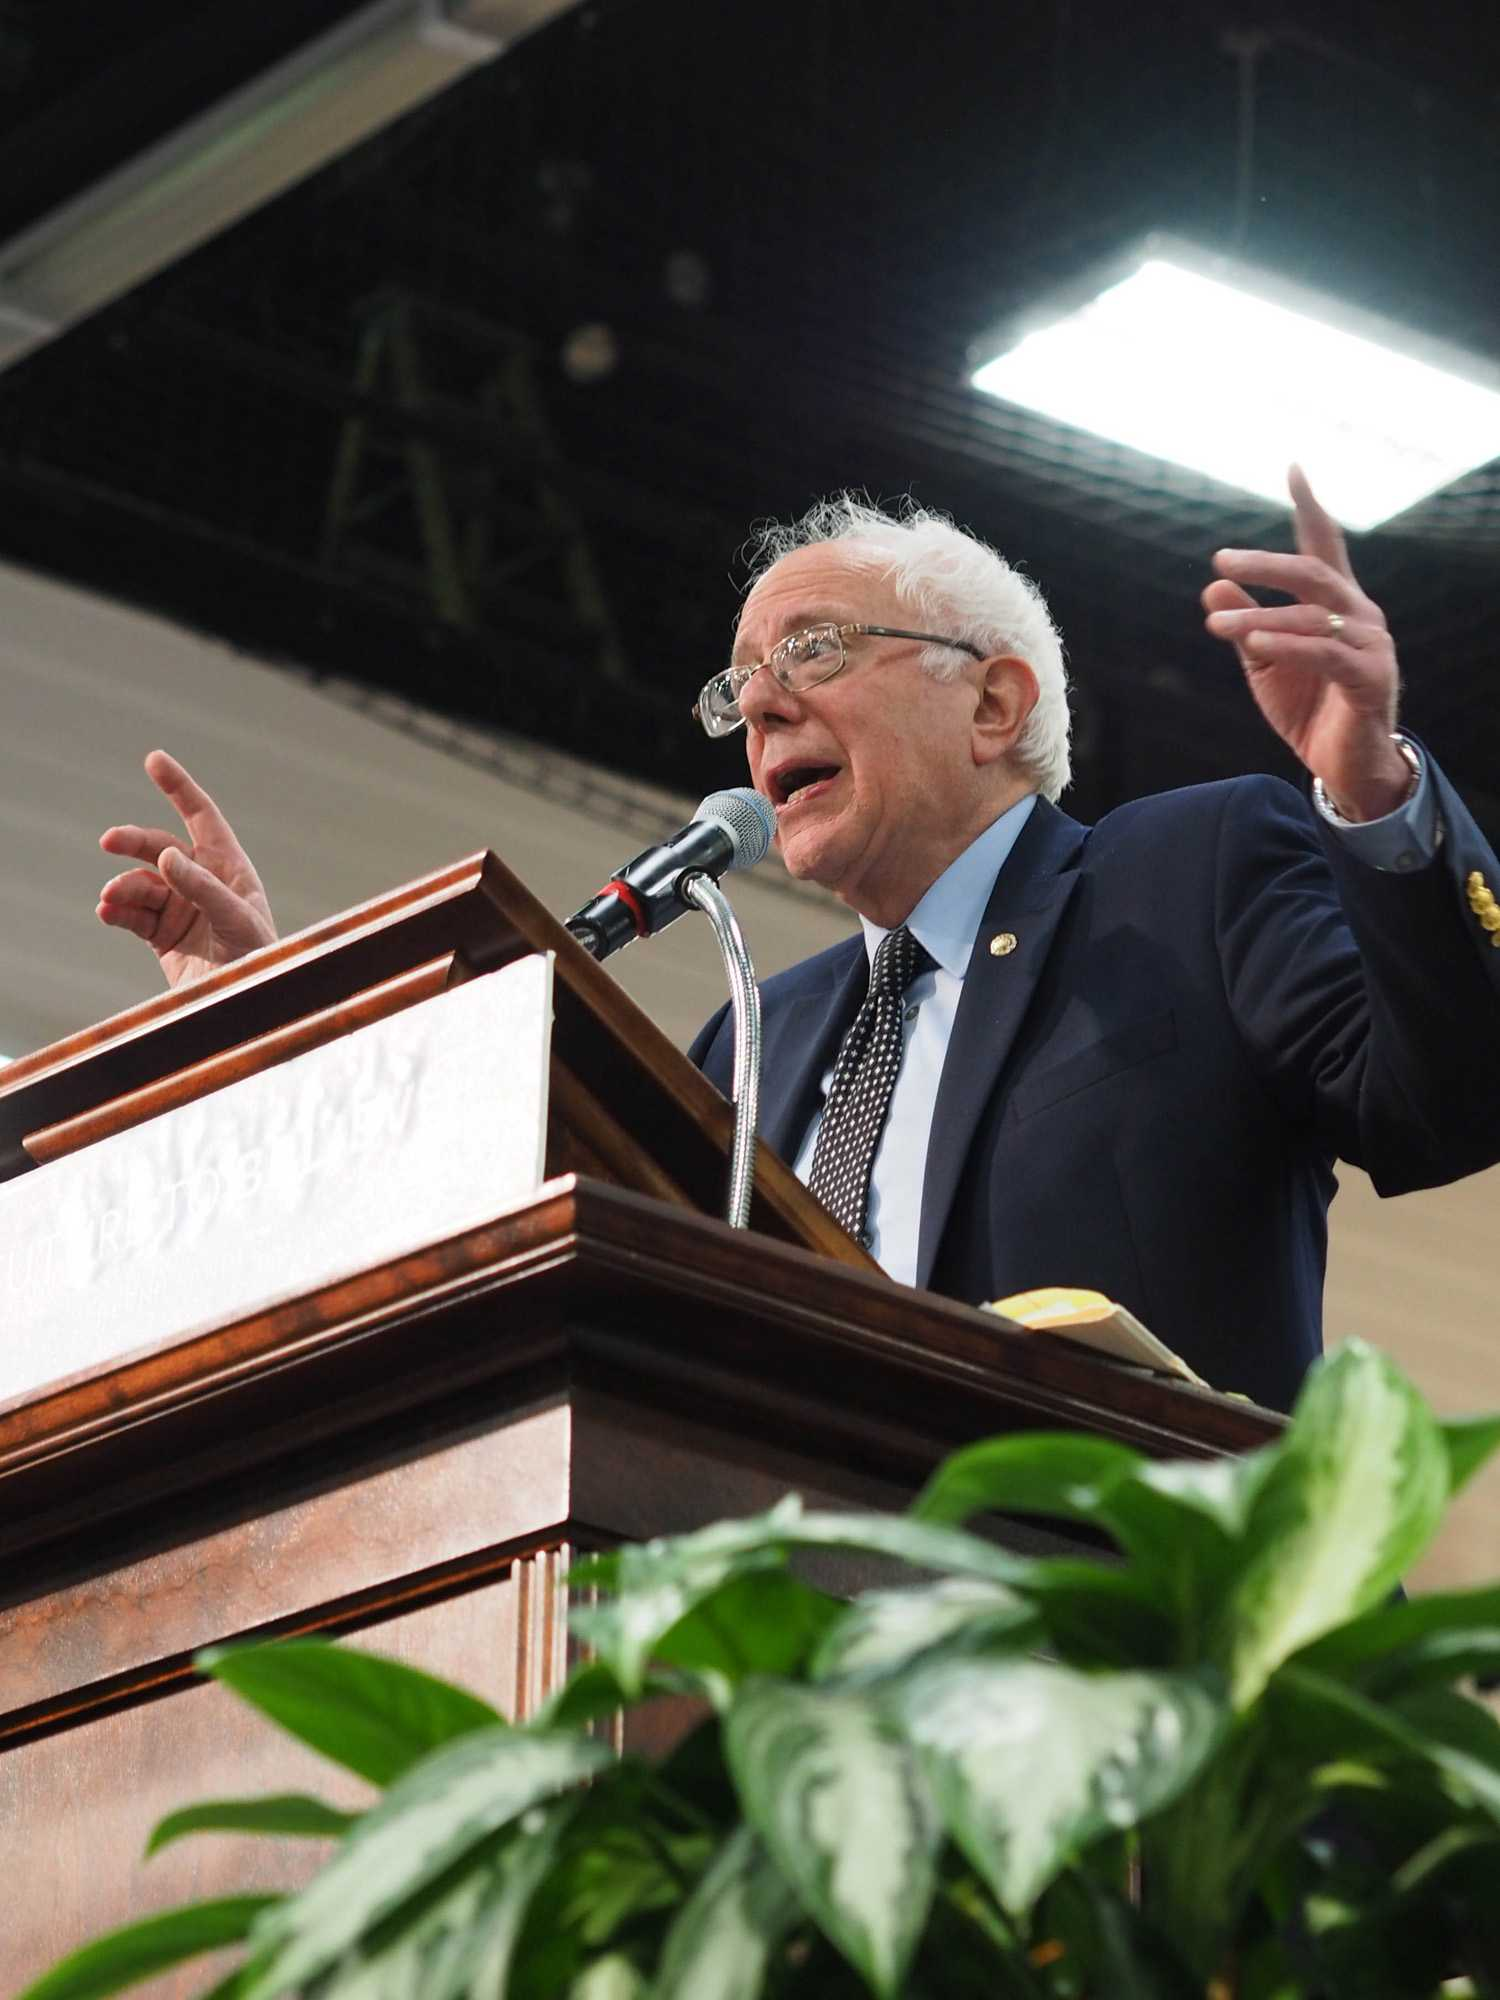 %3Cp%3EVermont+senator+and+presidential+candidate%26nbsp%3BBernie+Sanders+held+a+rally+at+the+University+on+Saturday%26nbsp%3Bto+encourage+people+to+vote+in+the+Illinois+primary+election.+The+packed+gym+in+the%26nbsp%3BActivities+and+Recreation+Center+was+full+of+people+of+different+ages%2C+hometowns+and%26nbsp%3Bbackgrounds.%26nbsp%3B%3C%2Fp%3E